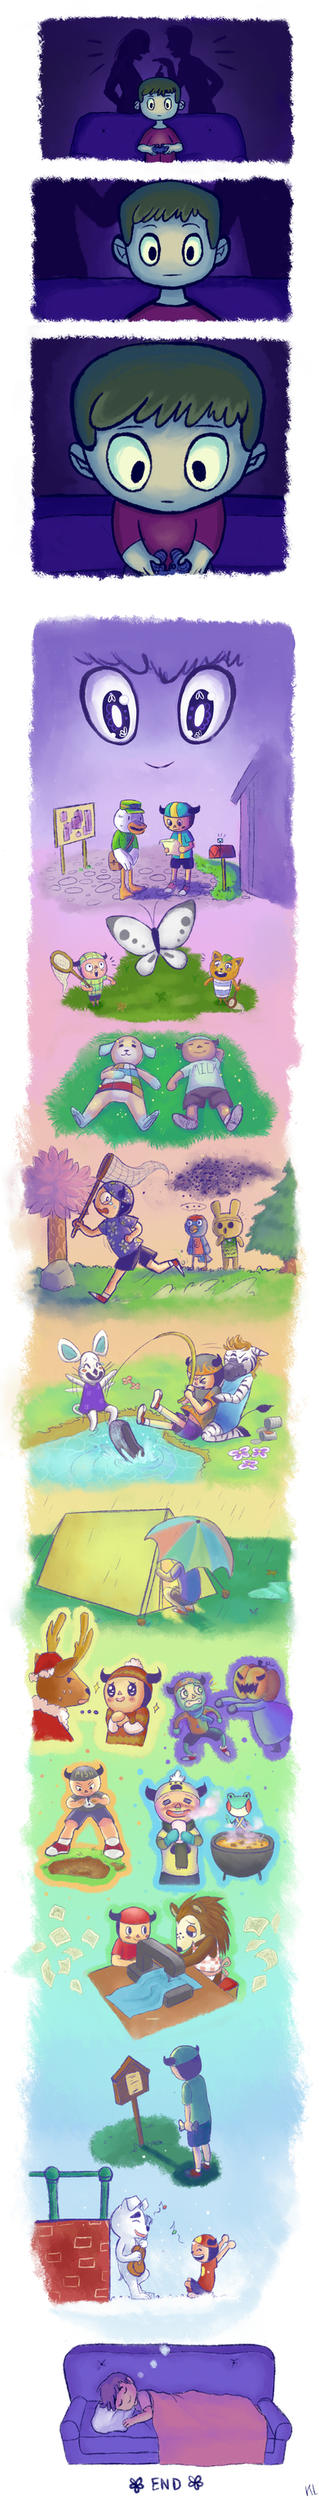 Animal Crossing- Childhood memories: Growing! by cocoaowls